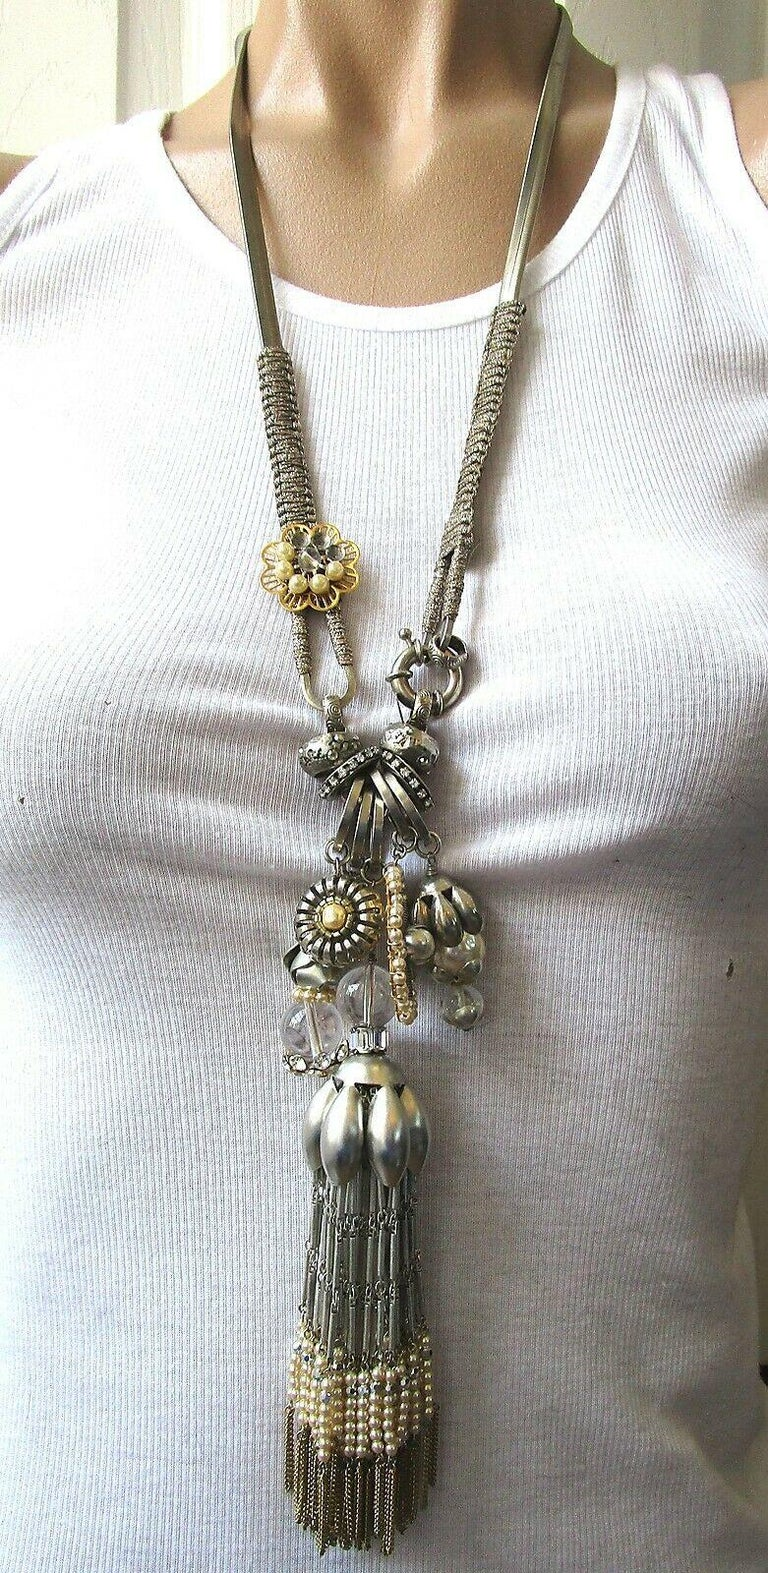 Fabulous Miriam Haskell Designer Necklace featuring Charms with Crystal, Pearl and Chain Tassels. Oversized spring ring clasp at the front or just slips over the head. Necklace measures approx. 28